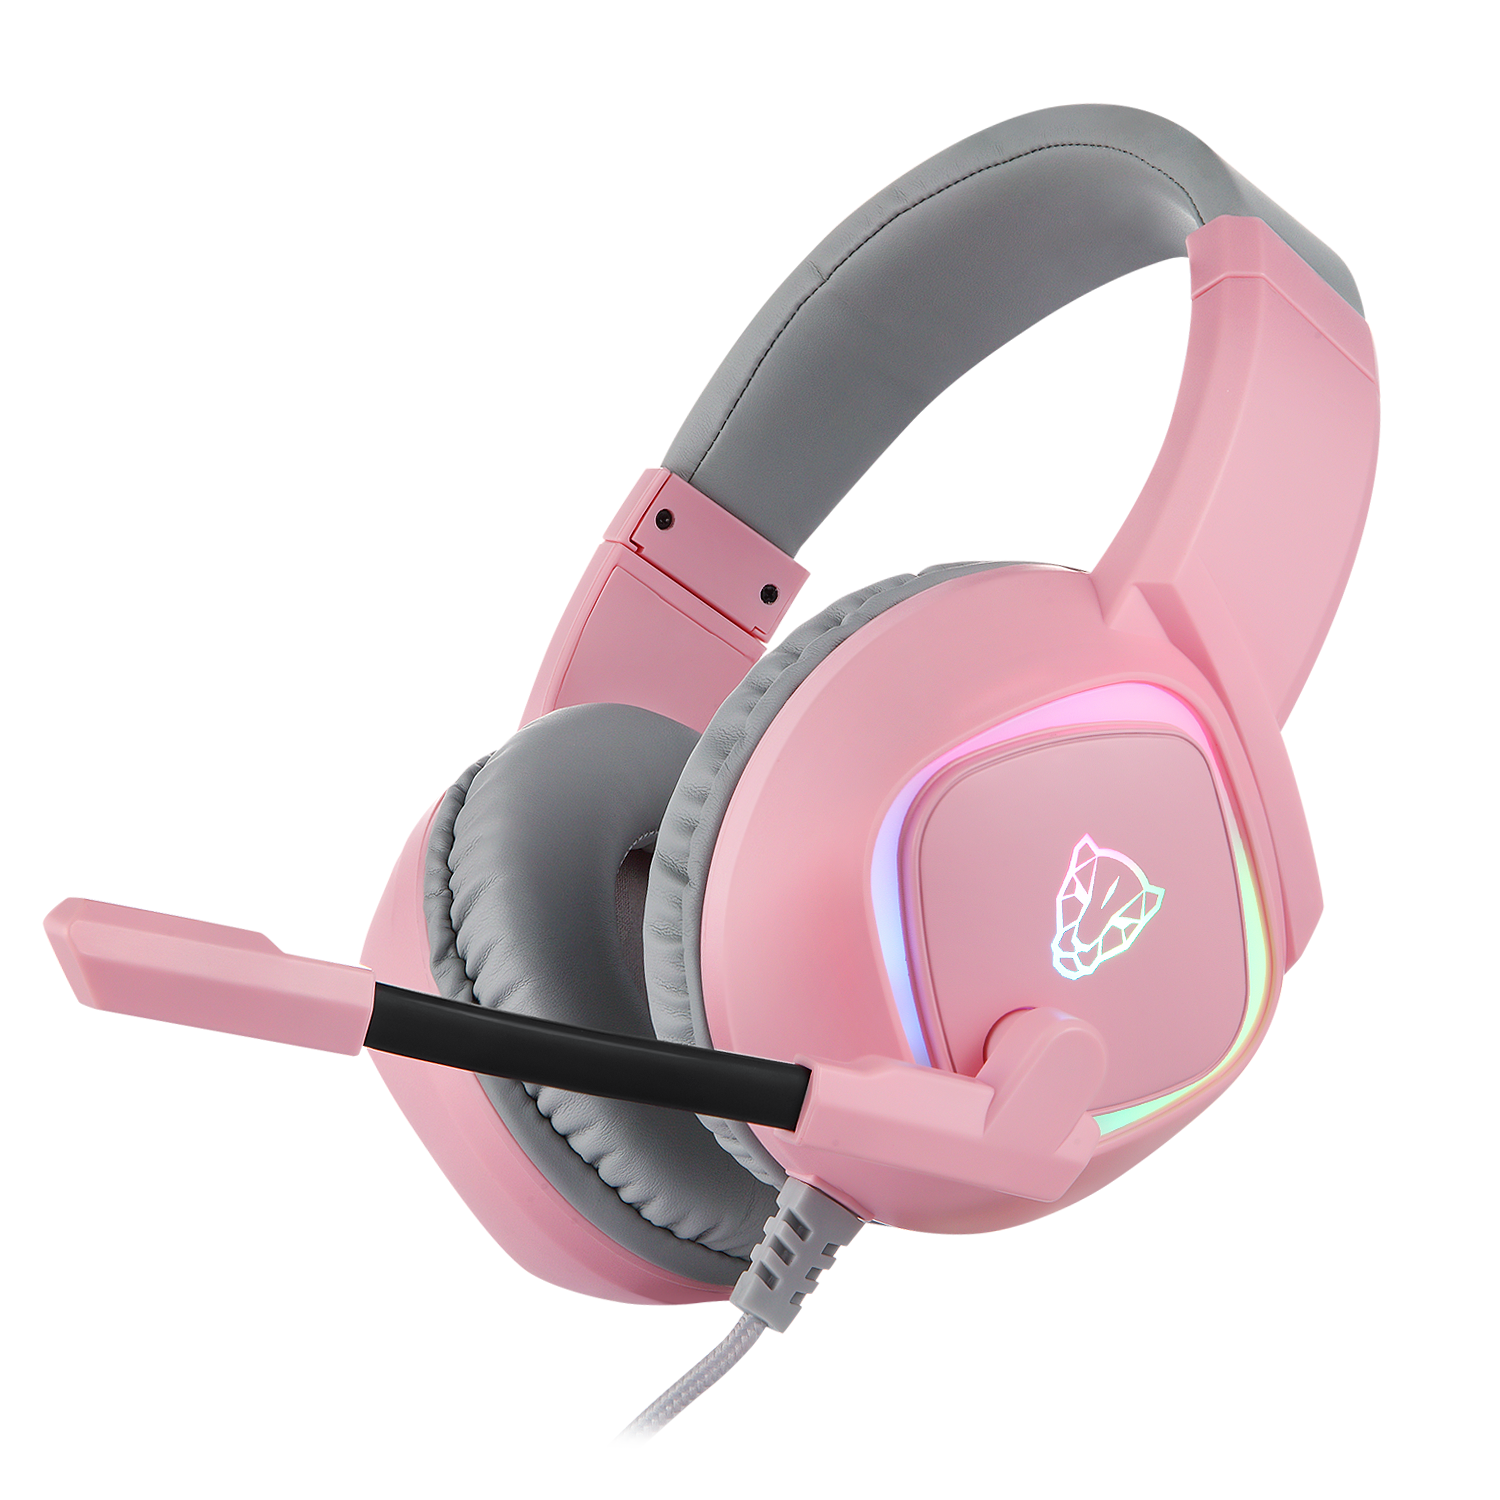 Headset Gamer Motospeed G750 Rosa RGB